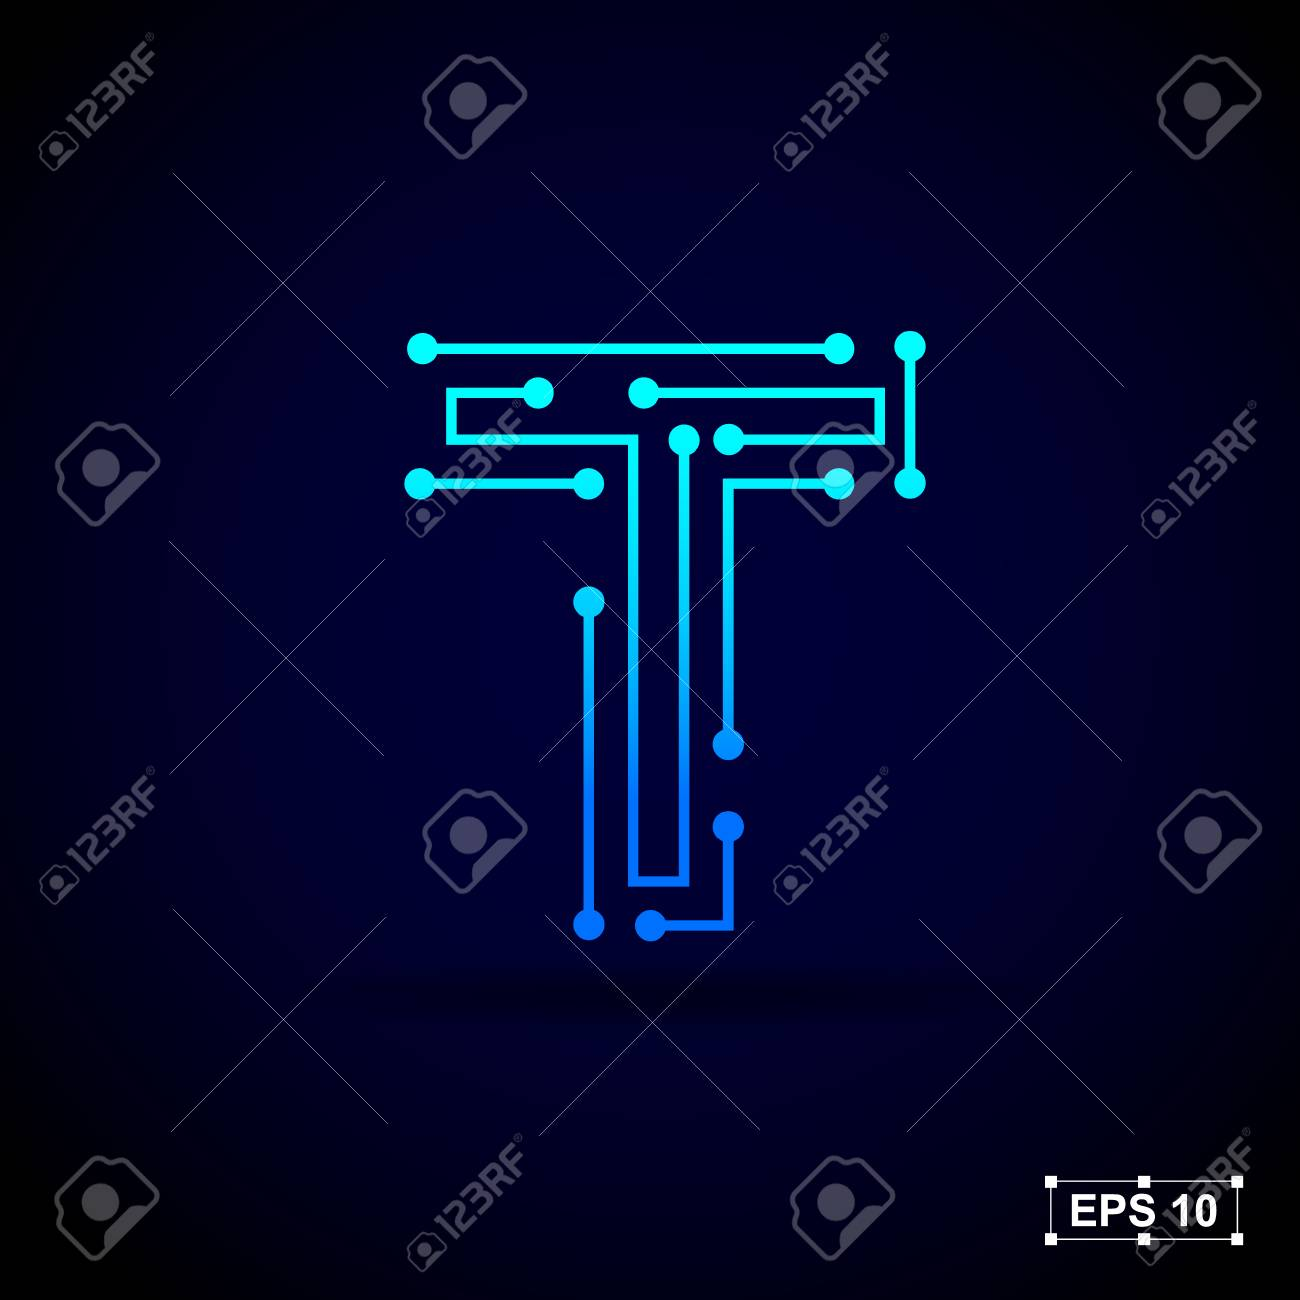 2719a076 Letter T logo design template,Technology abstract dot connection cross vector  logo icon circle logotype